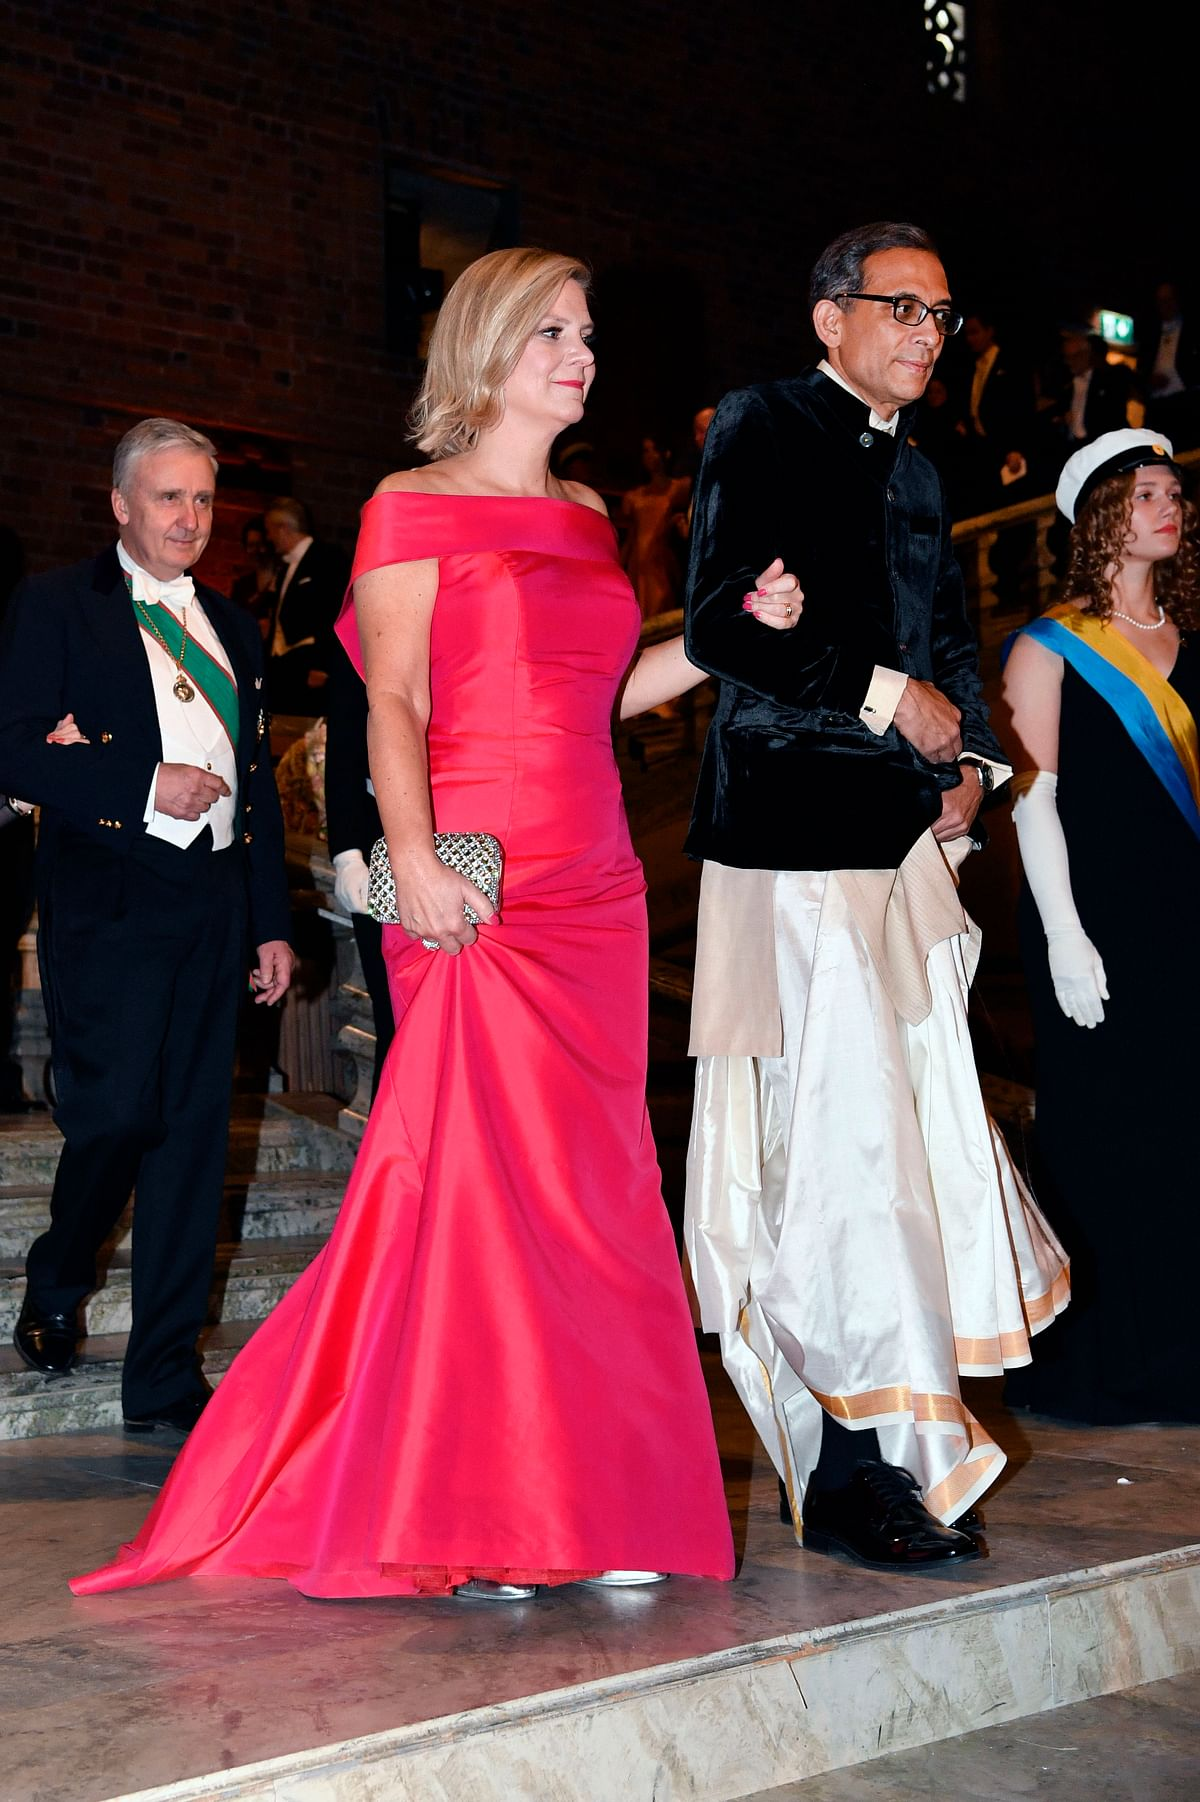 Swedish Finance Minister Magdalena Andersson and Economics Laureate Abhijit Banerjee arrive to the Nobel banquet at Stockholm City Hall, in Stockholm, Sweden, on Dec. 10, 2019. (Photo: PTI)